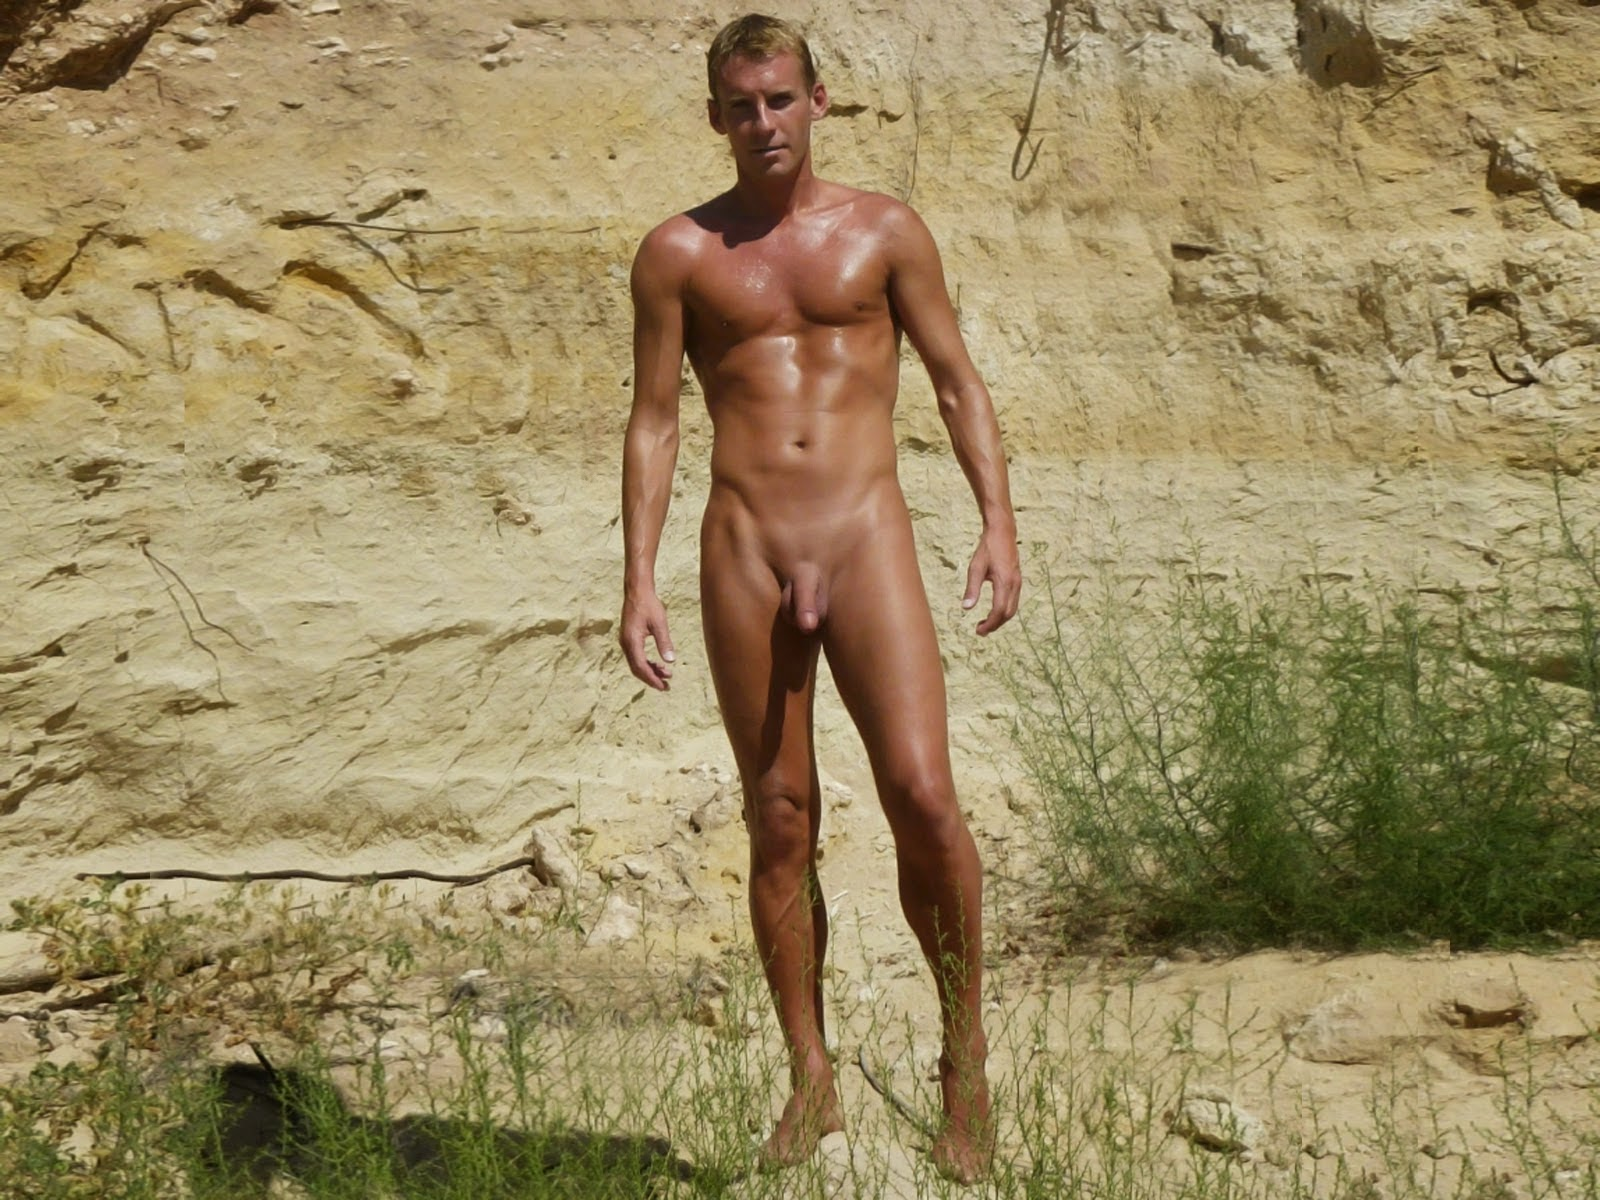 Hairy Male Full Frontal